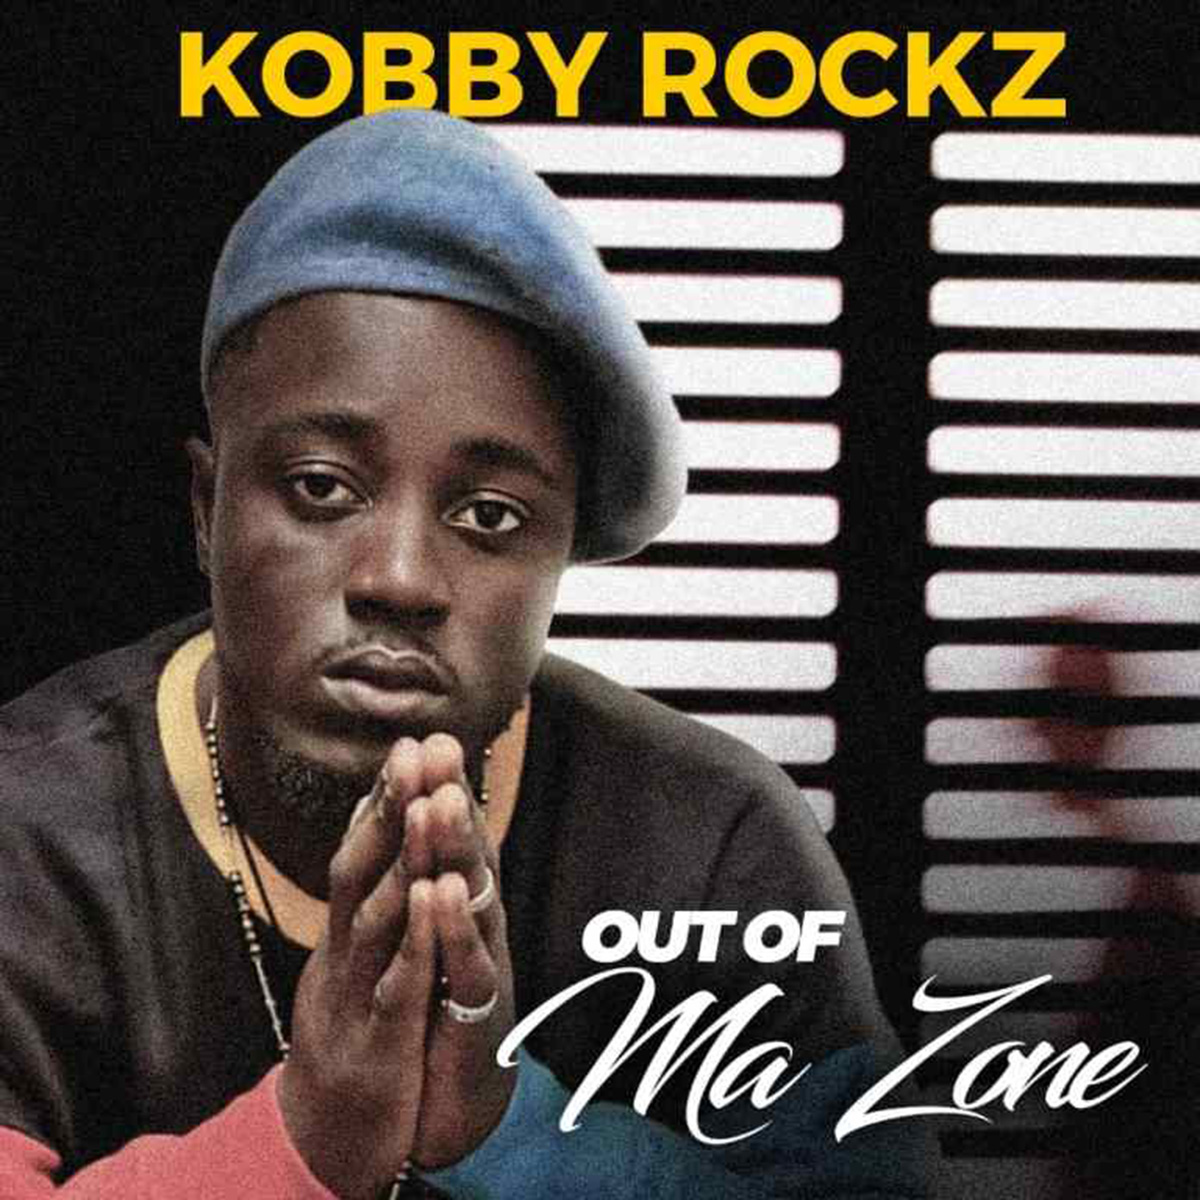 EP Review: Out Of Ma Zone by KobbyRockz